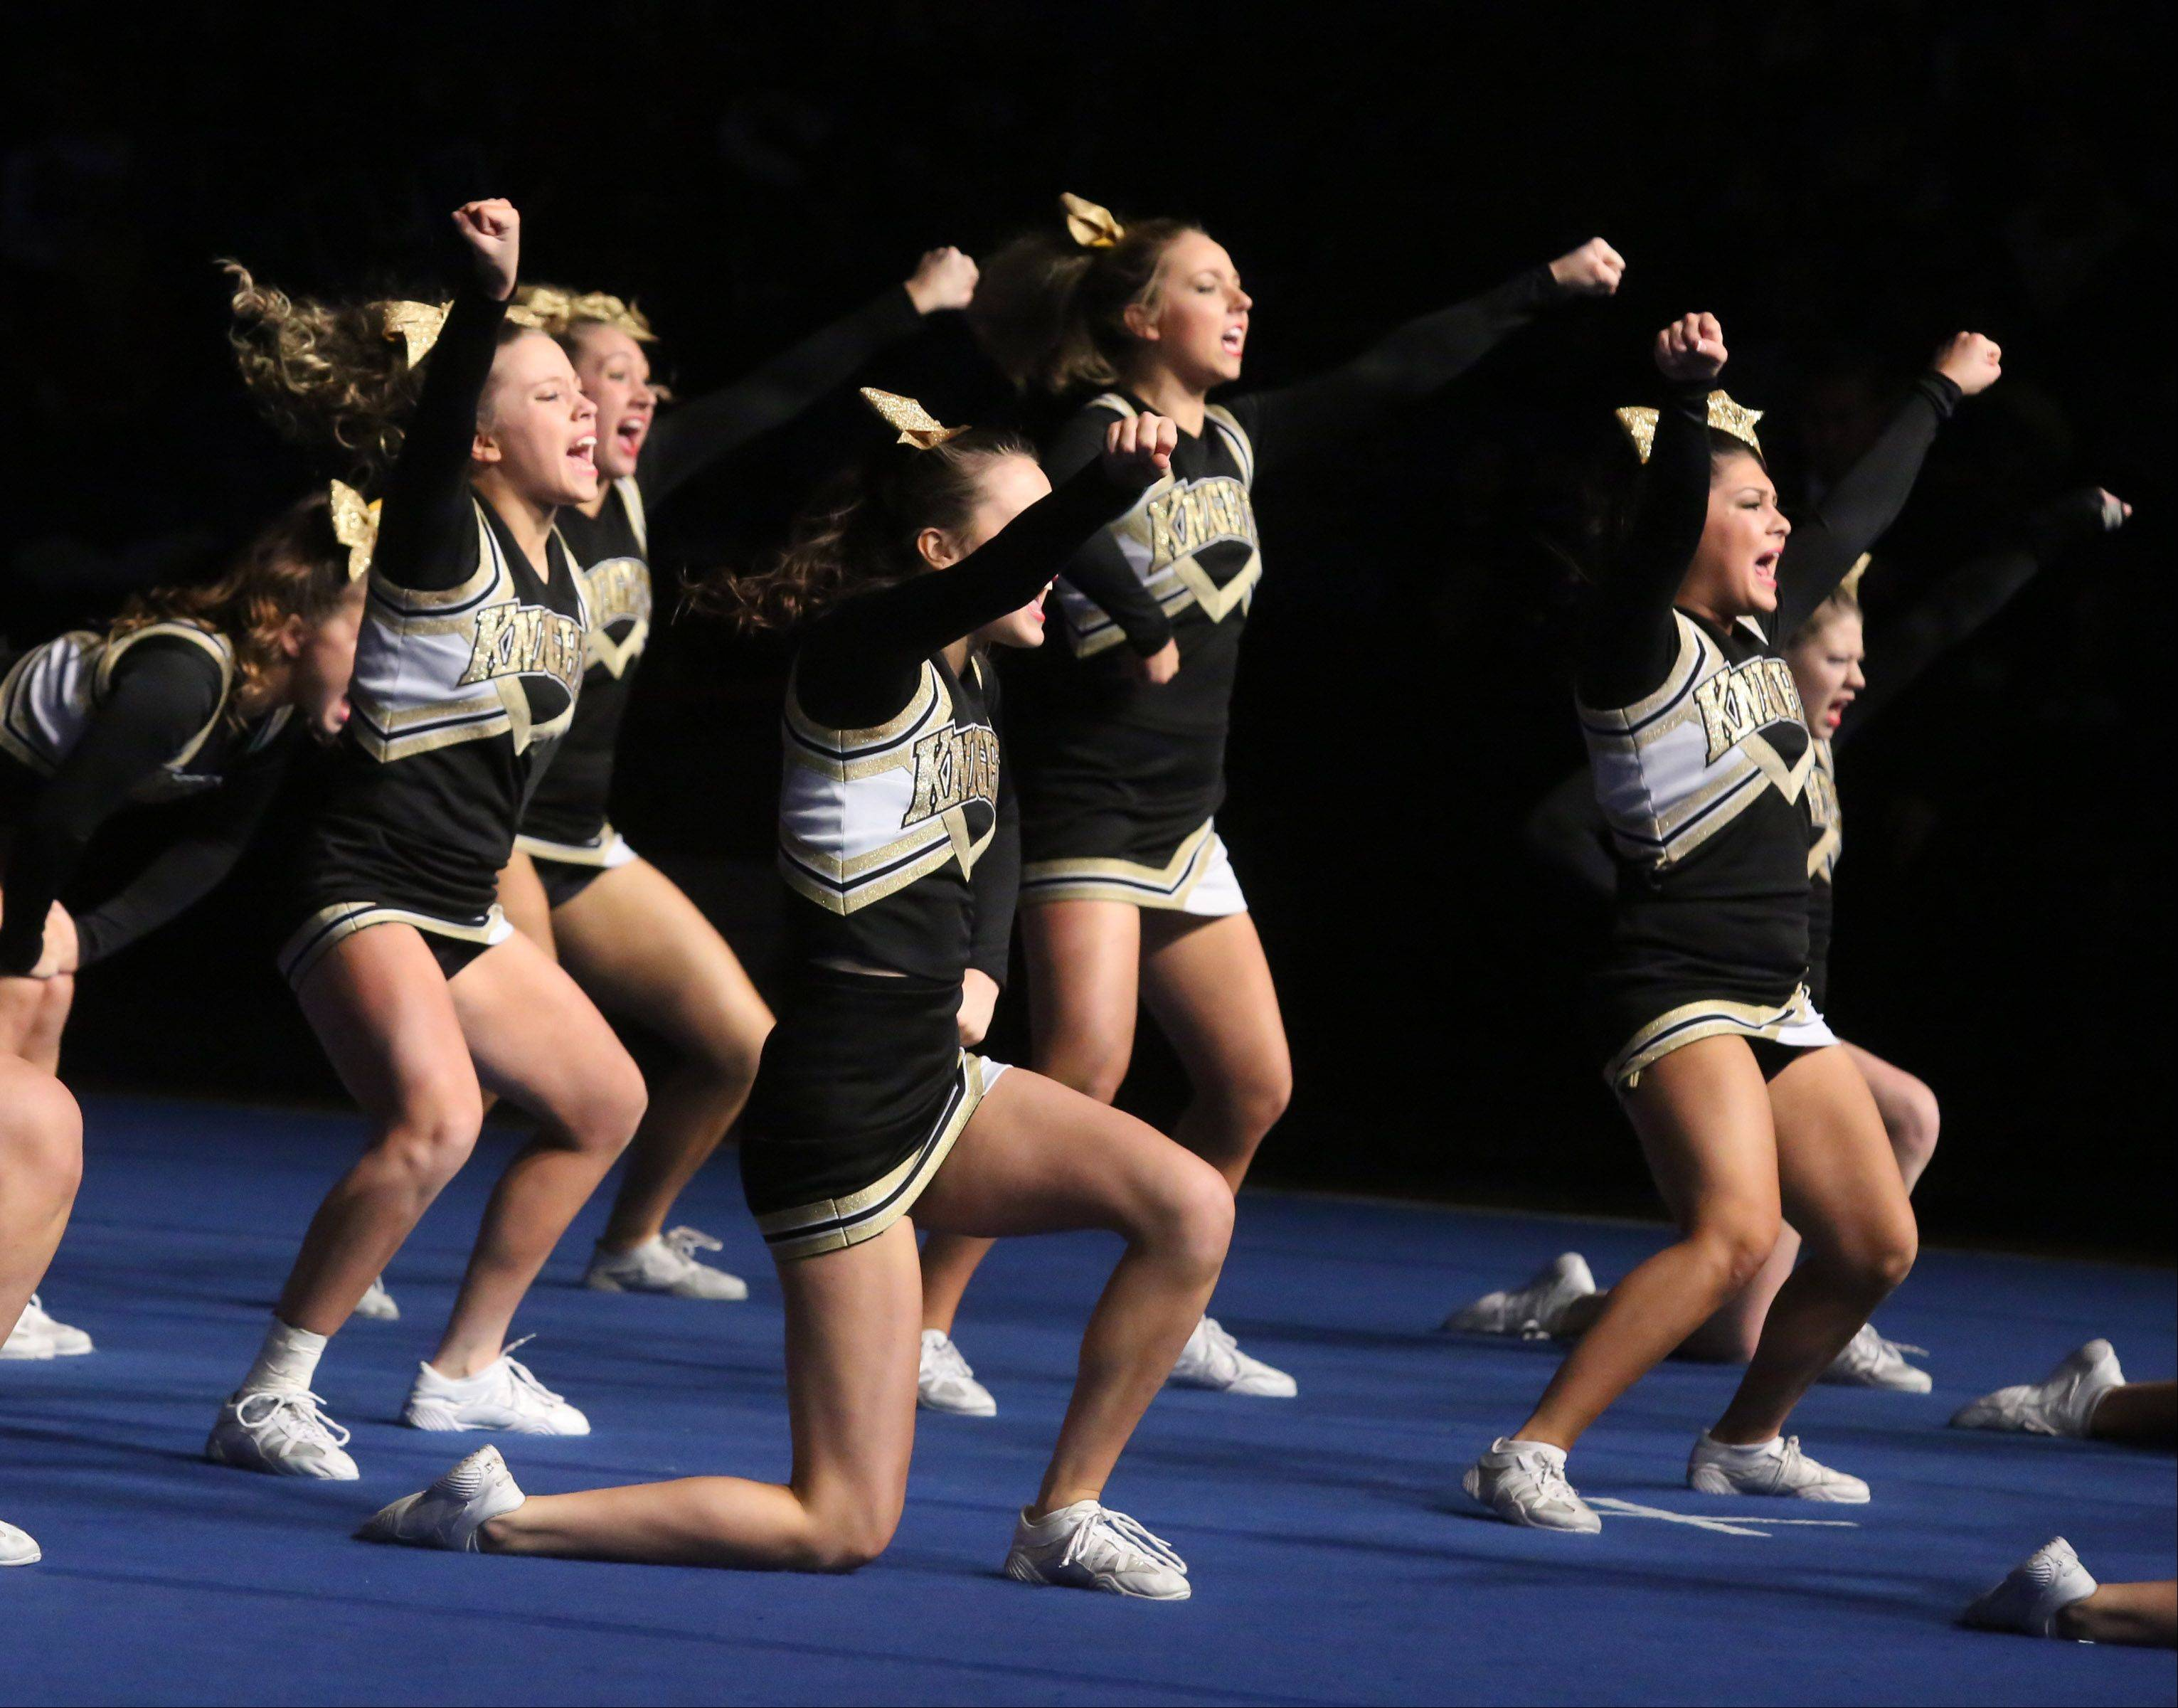 Grayslake North High School�s cheer team performs in the medium team category.